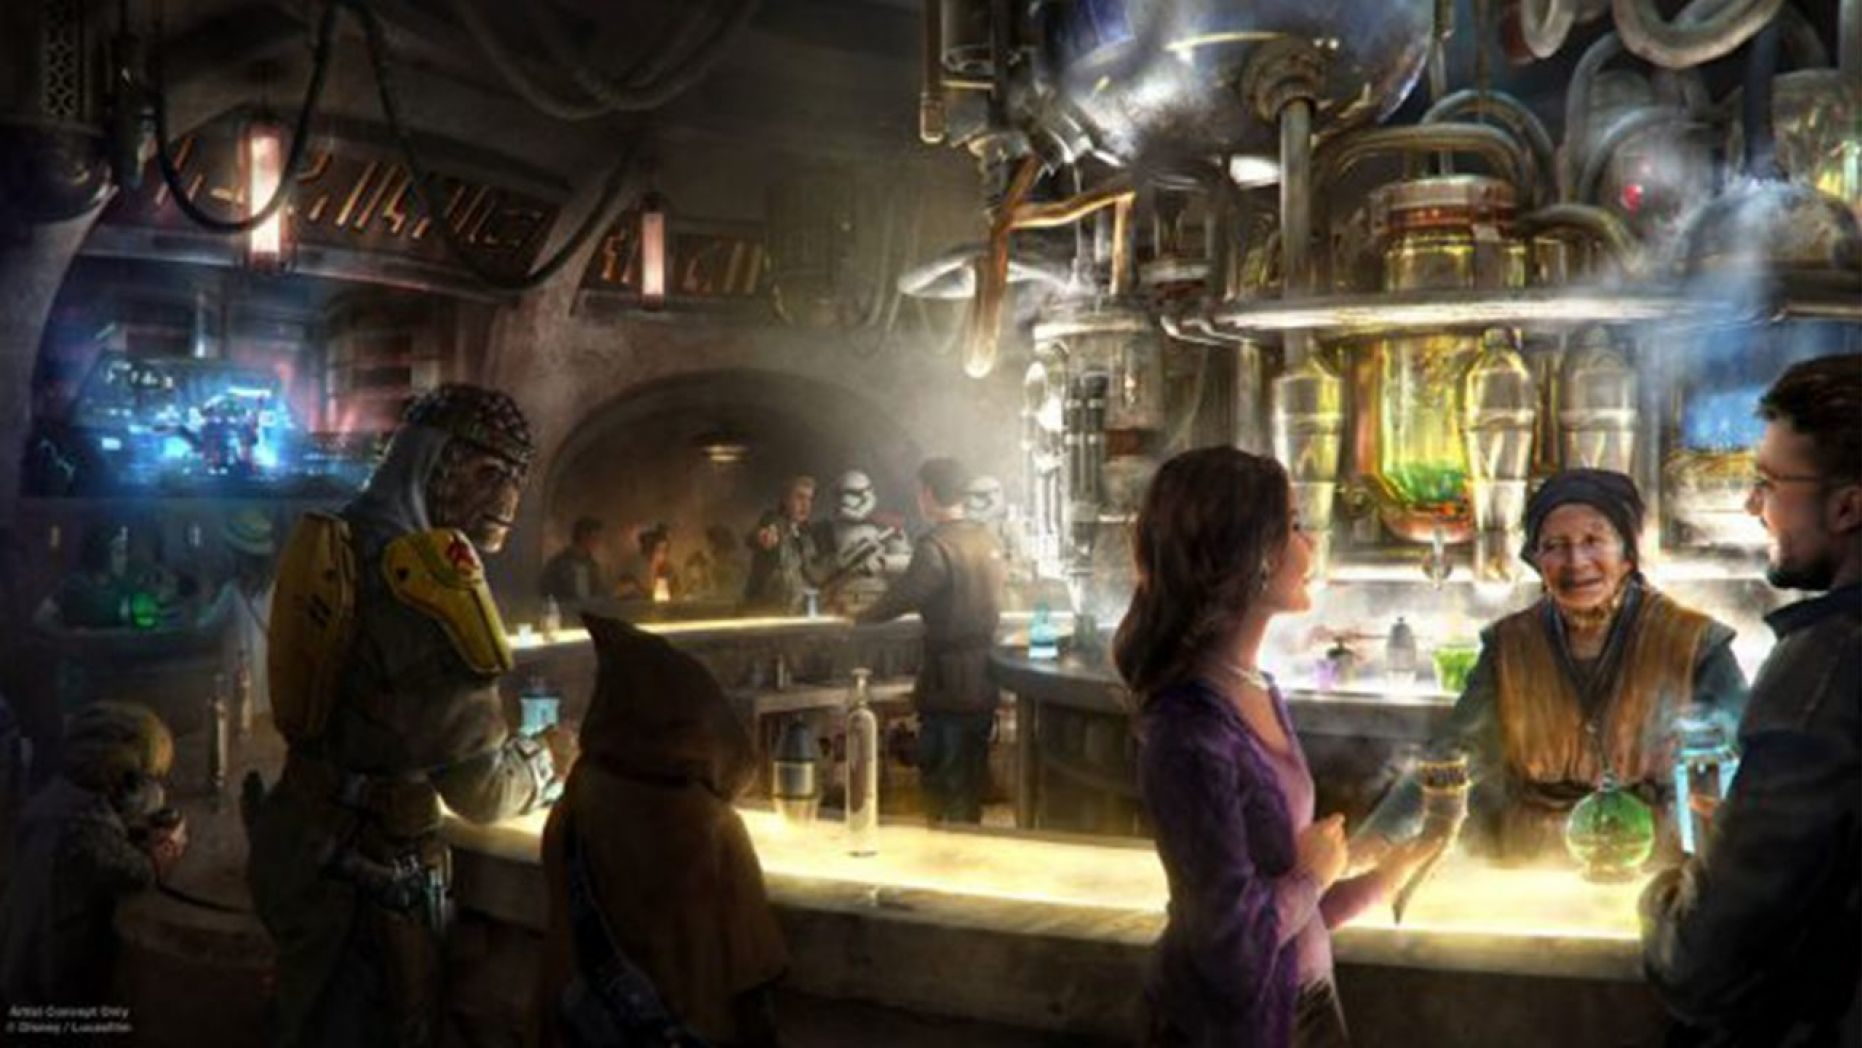 Disneyland's first-ever cantina will have one strict drinking rule